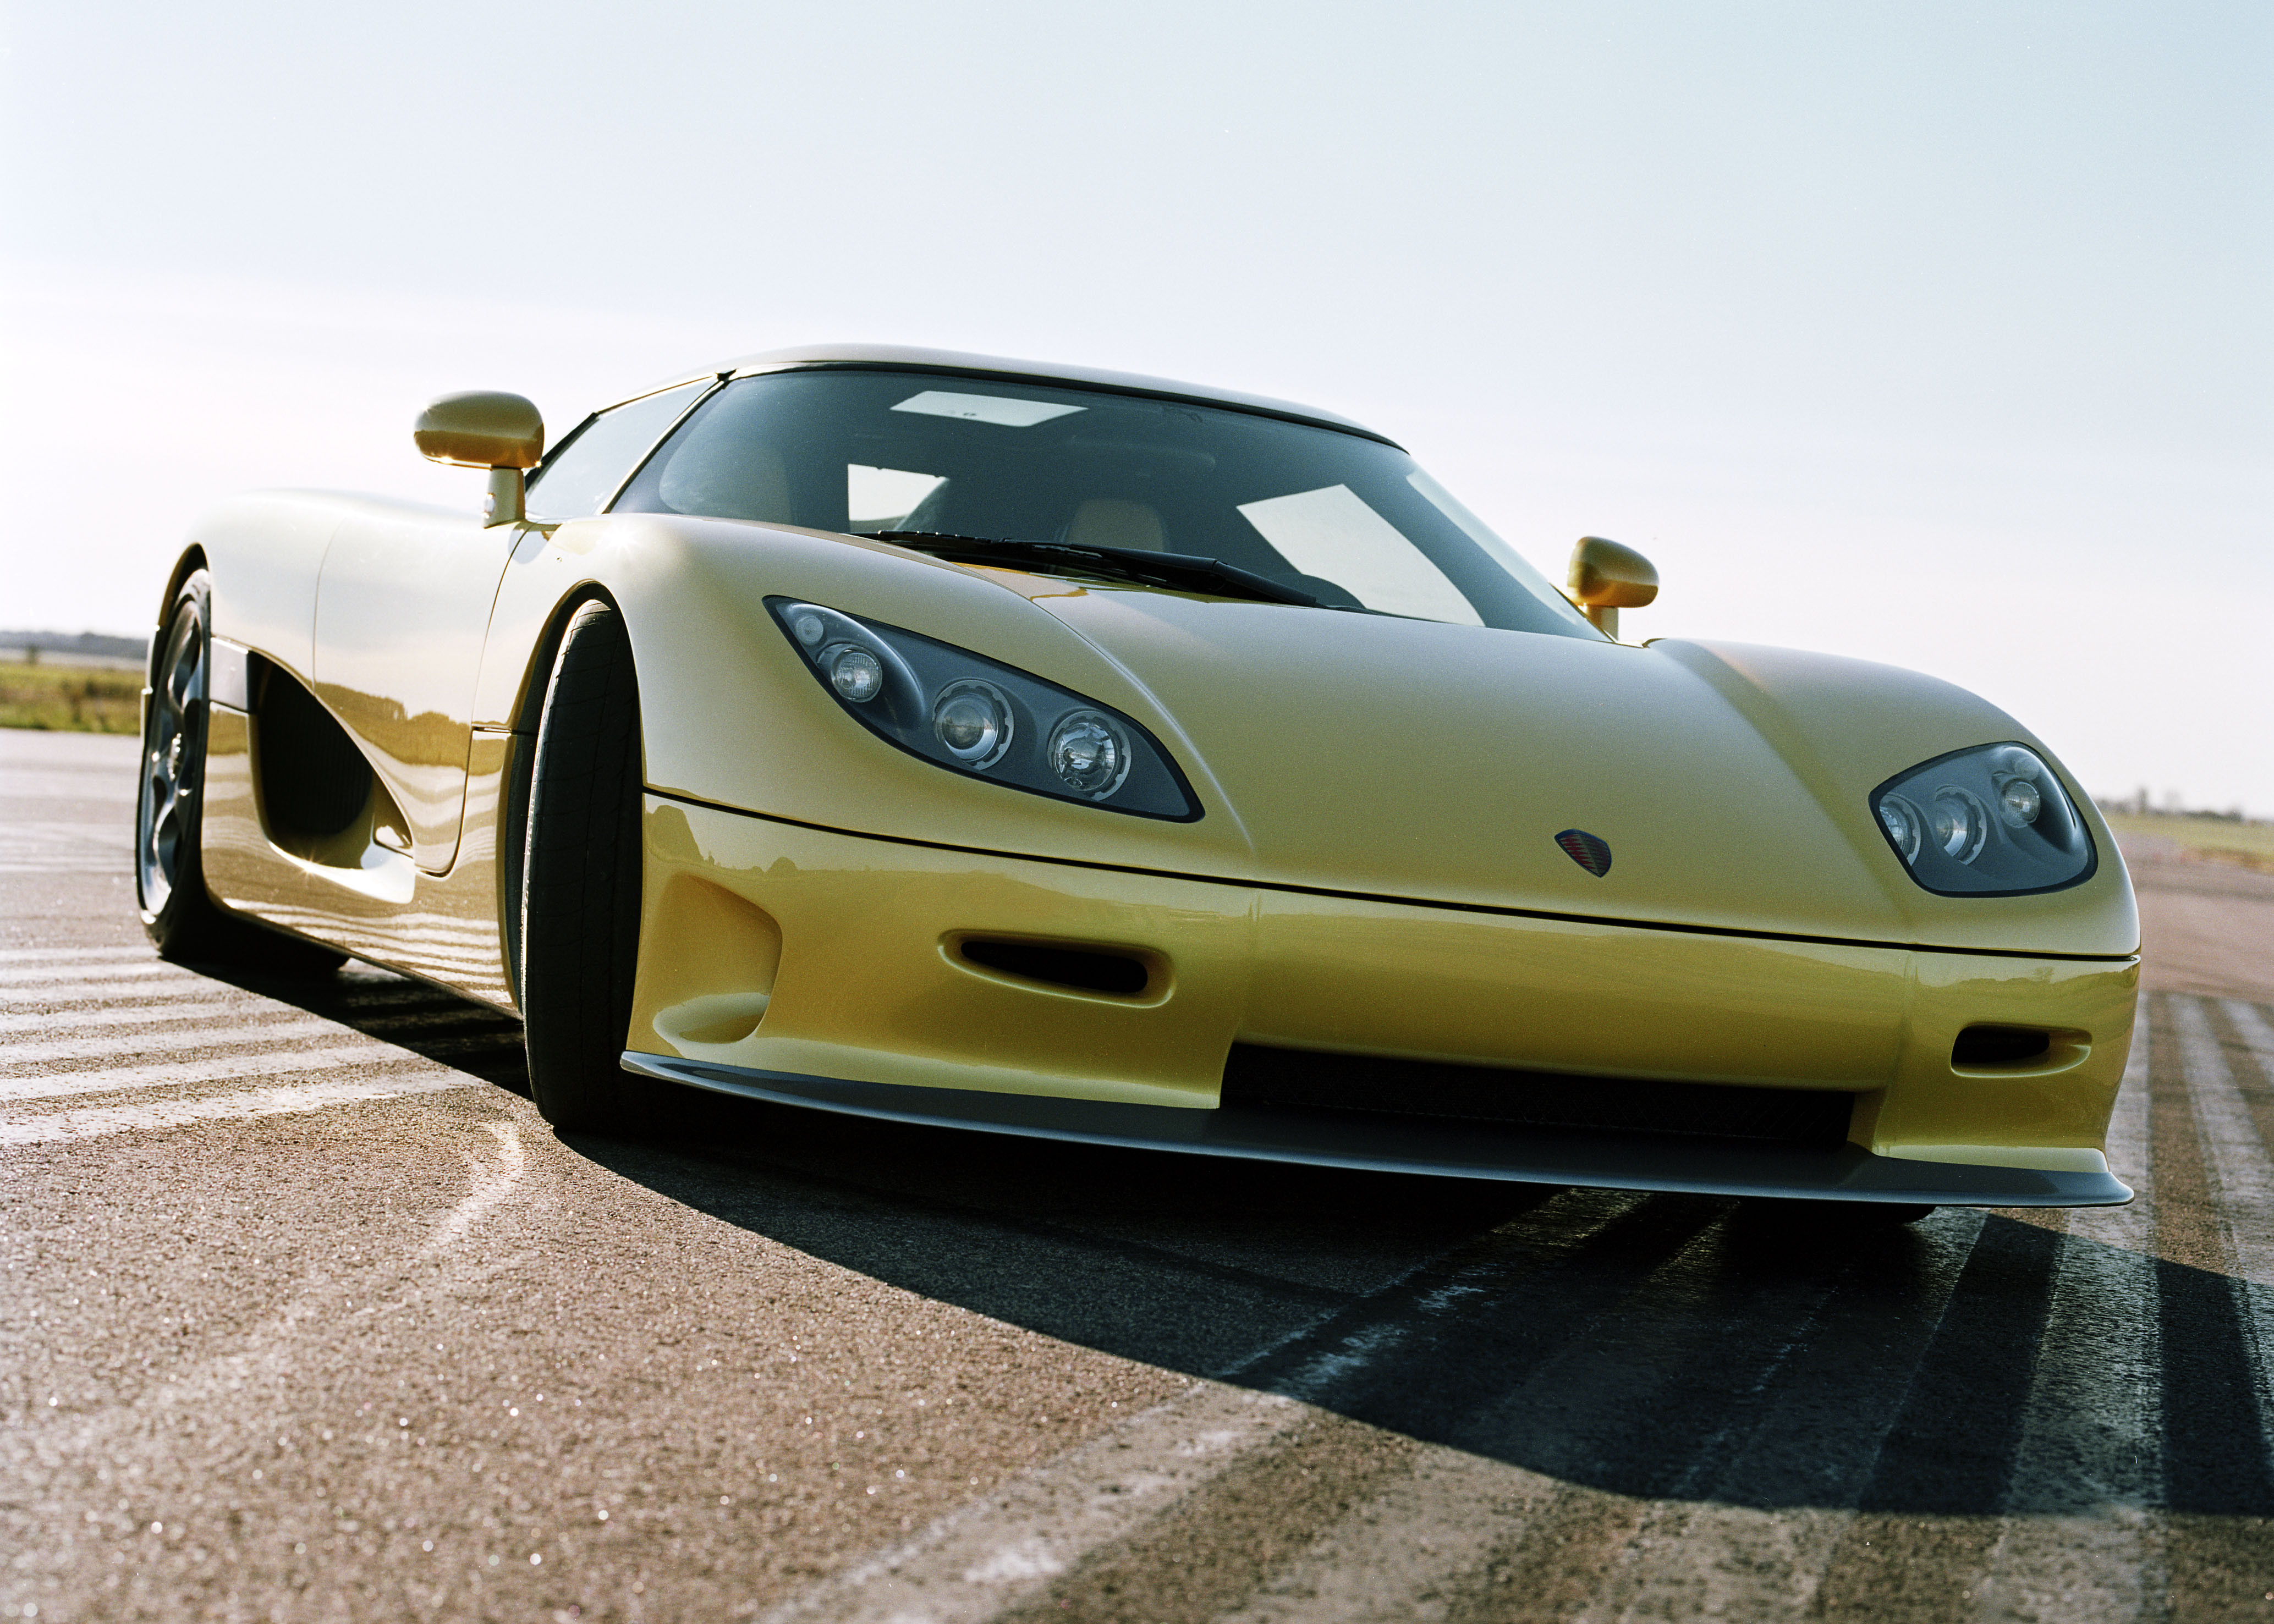 Pale yellow Koenigsegg CCR-3 on display at an aerodrome